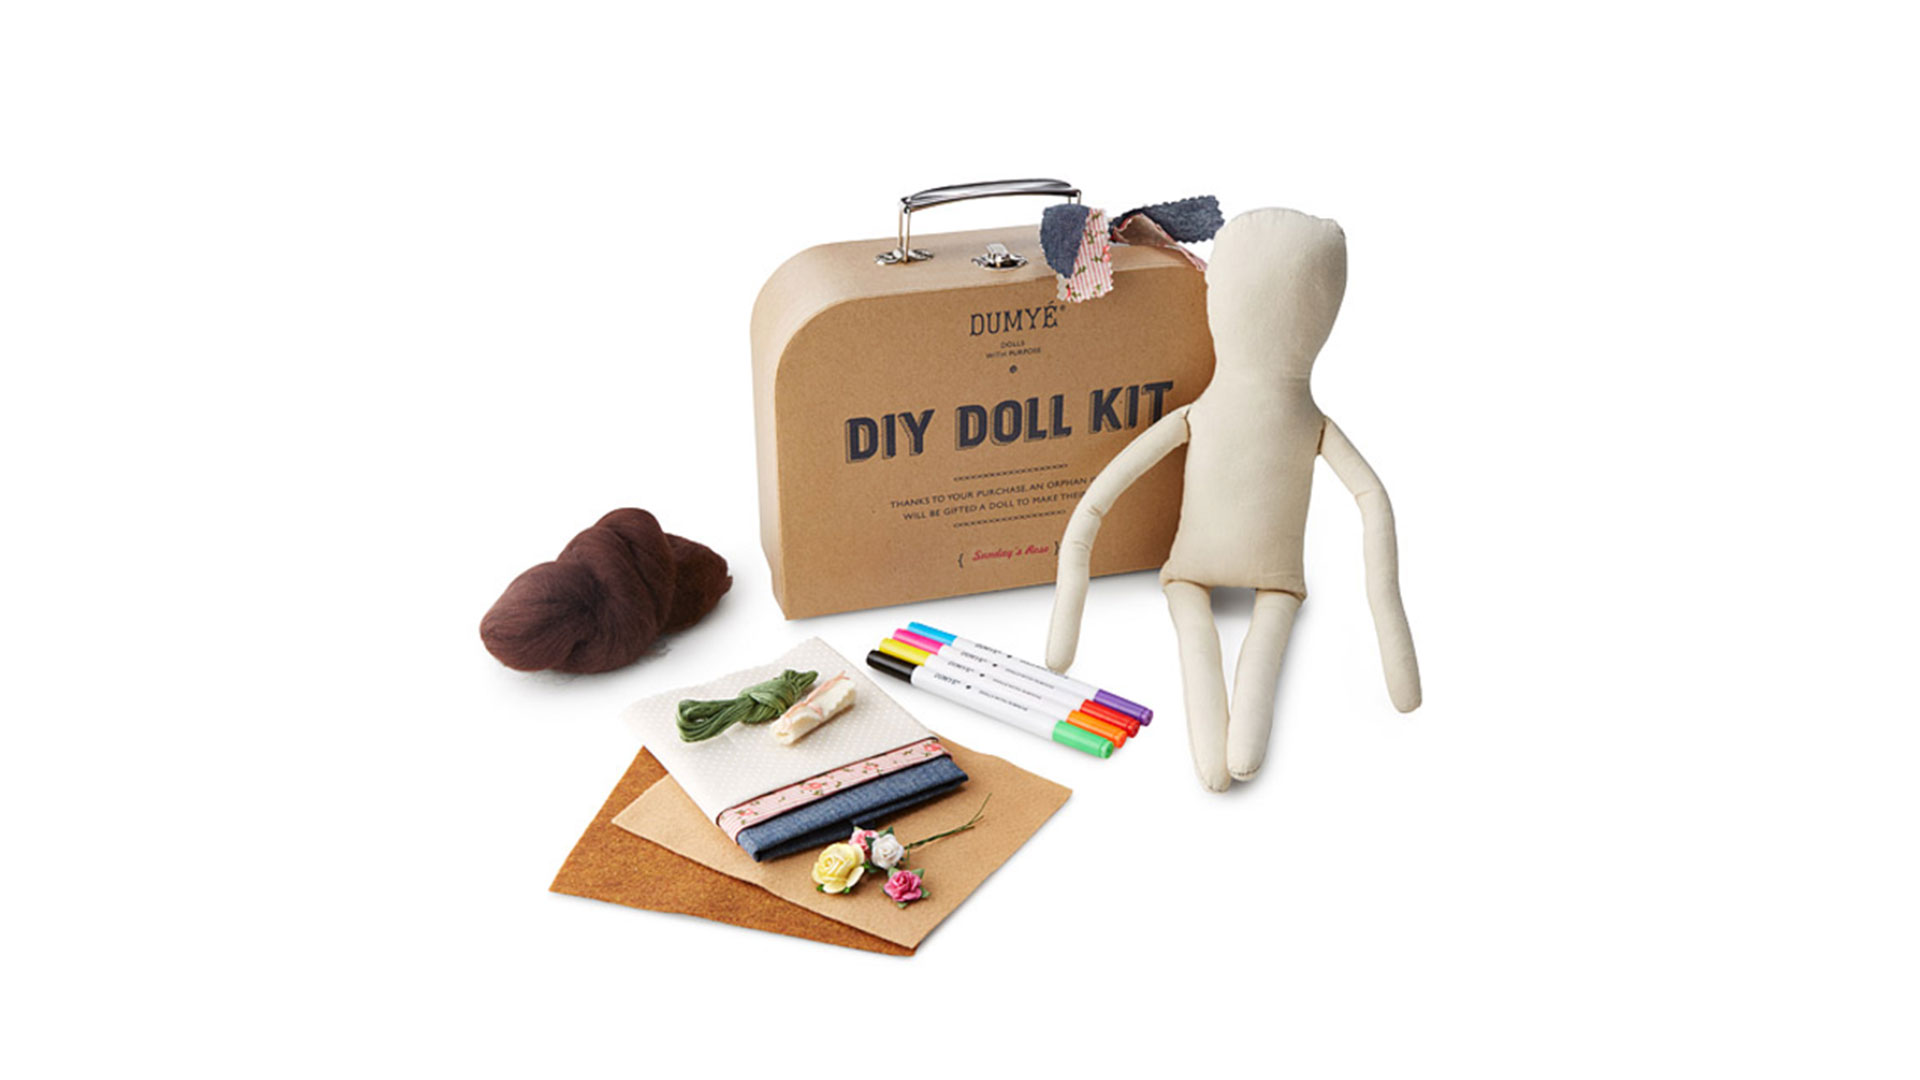 DIY Doll Kit